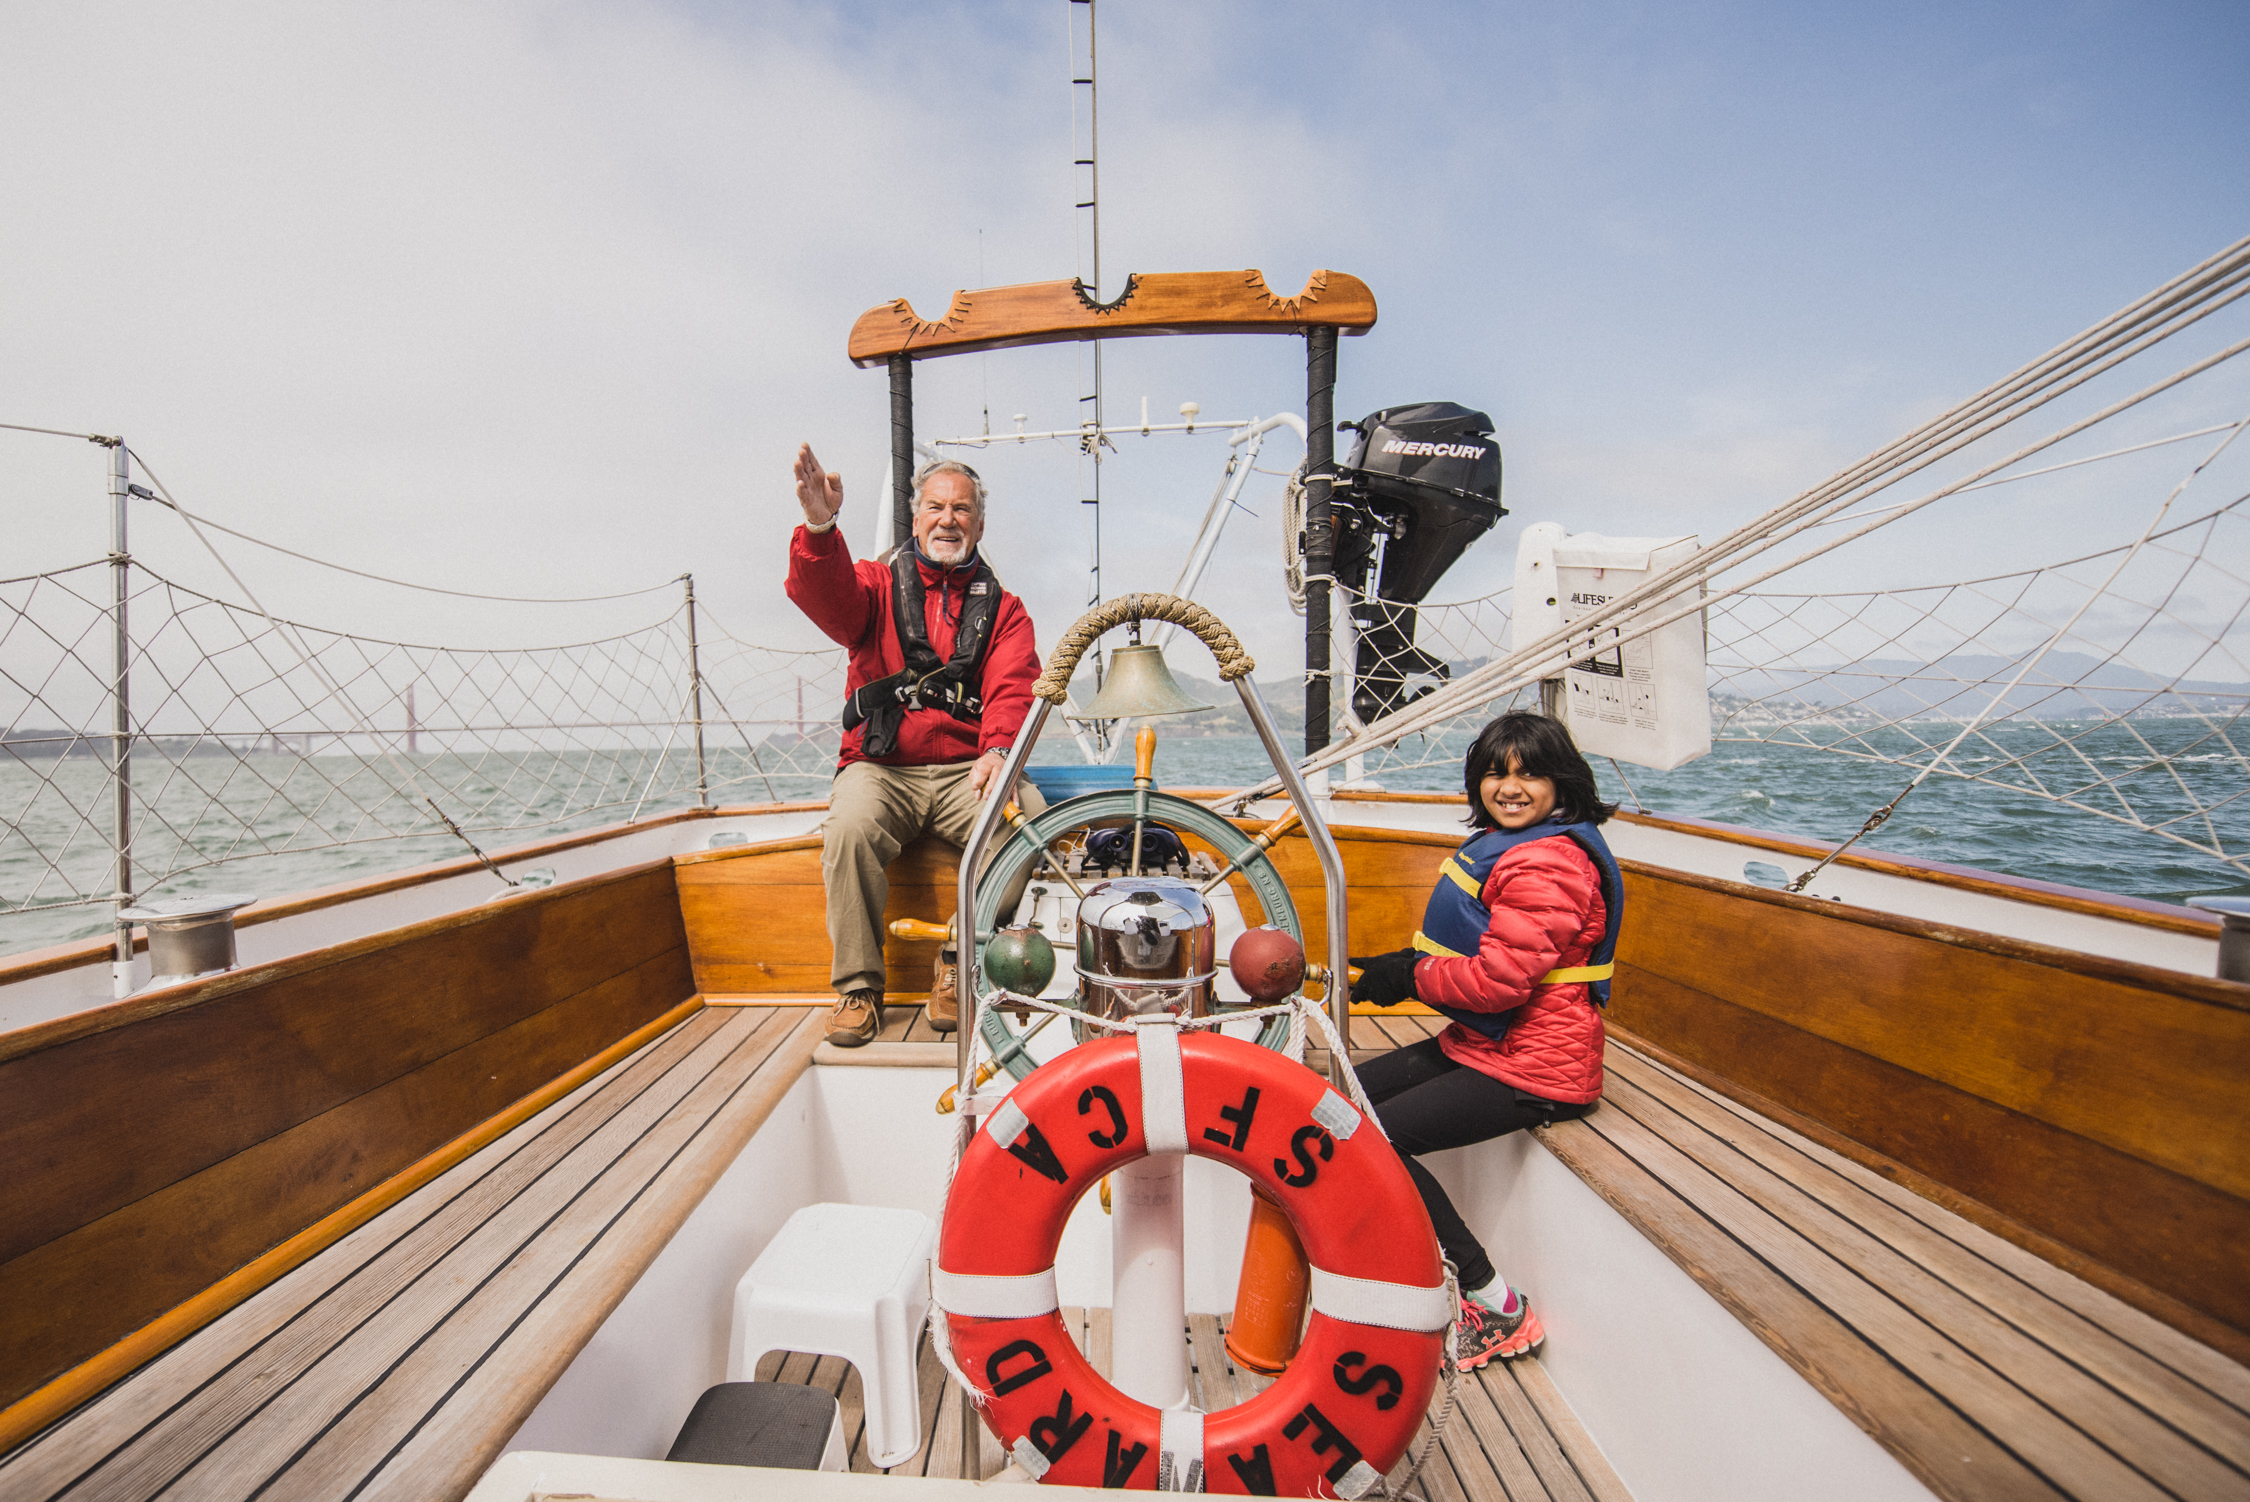 Call of the Sea - San Francisco - Another Look - 05.06.16-75.jpg